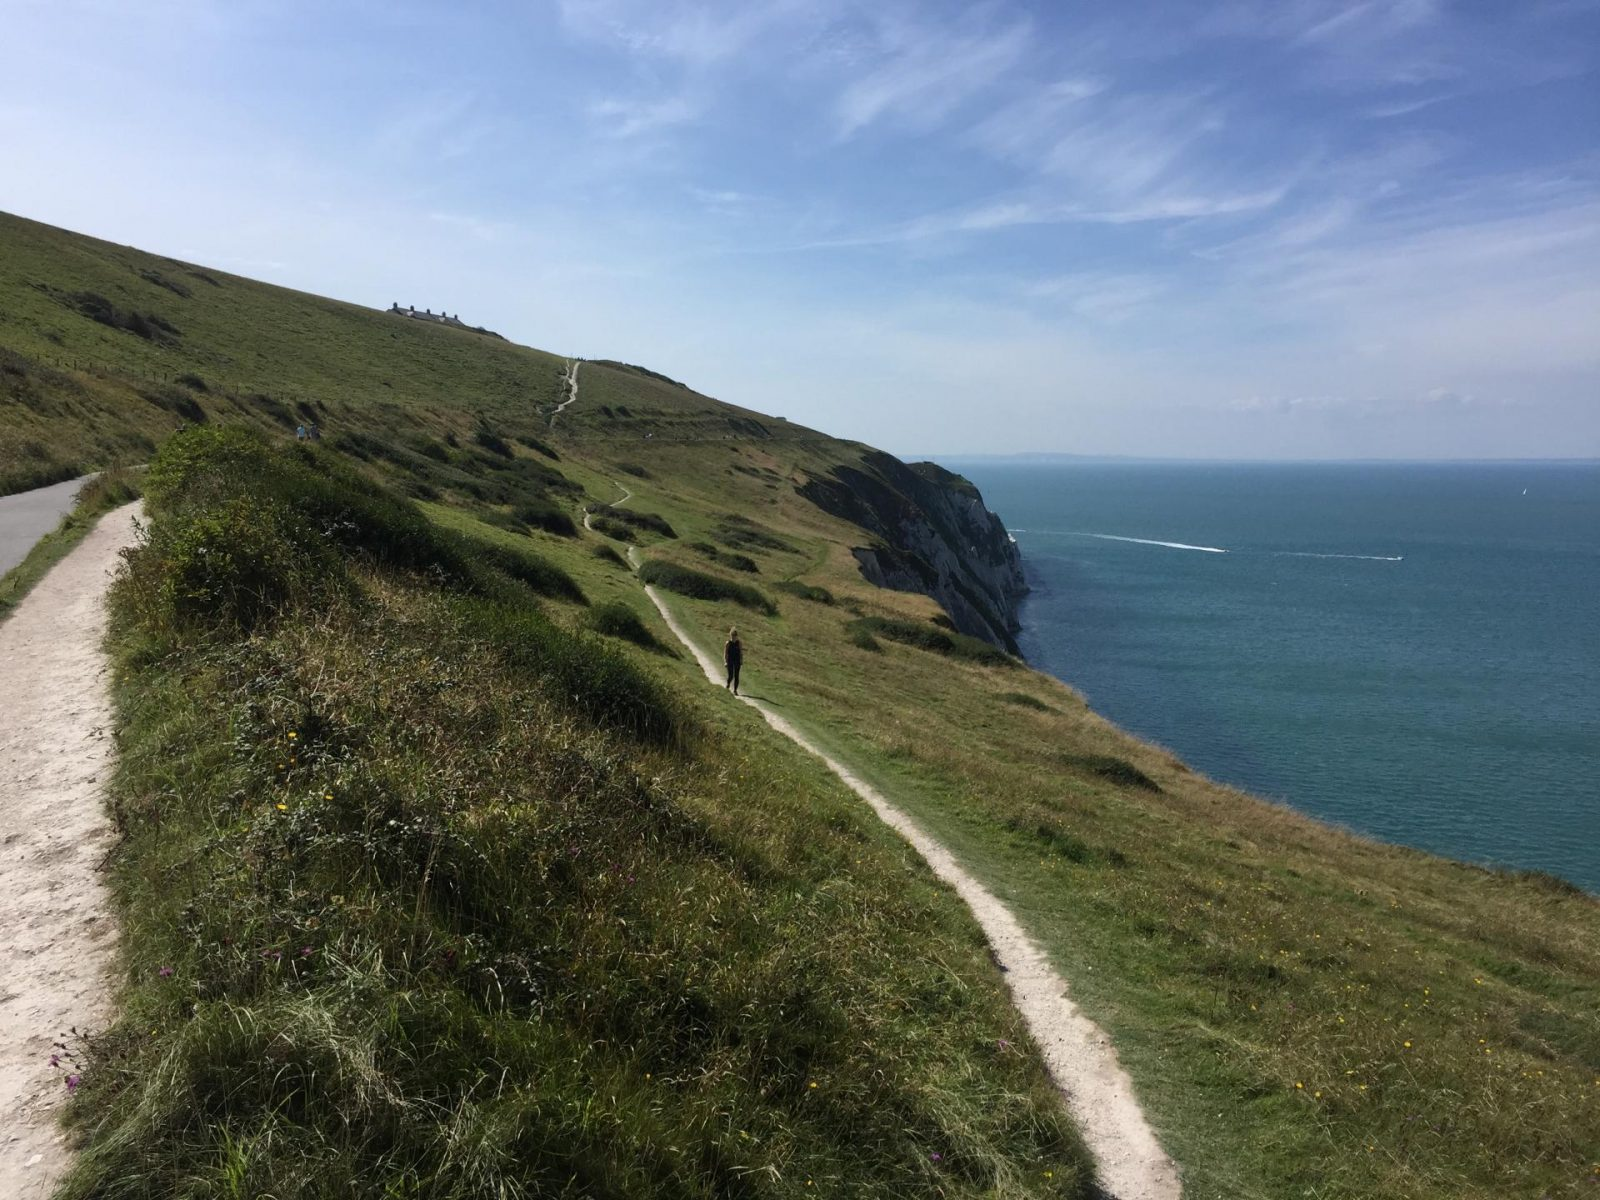 Hiking on the Isle of Wight